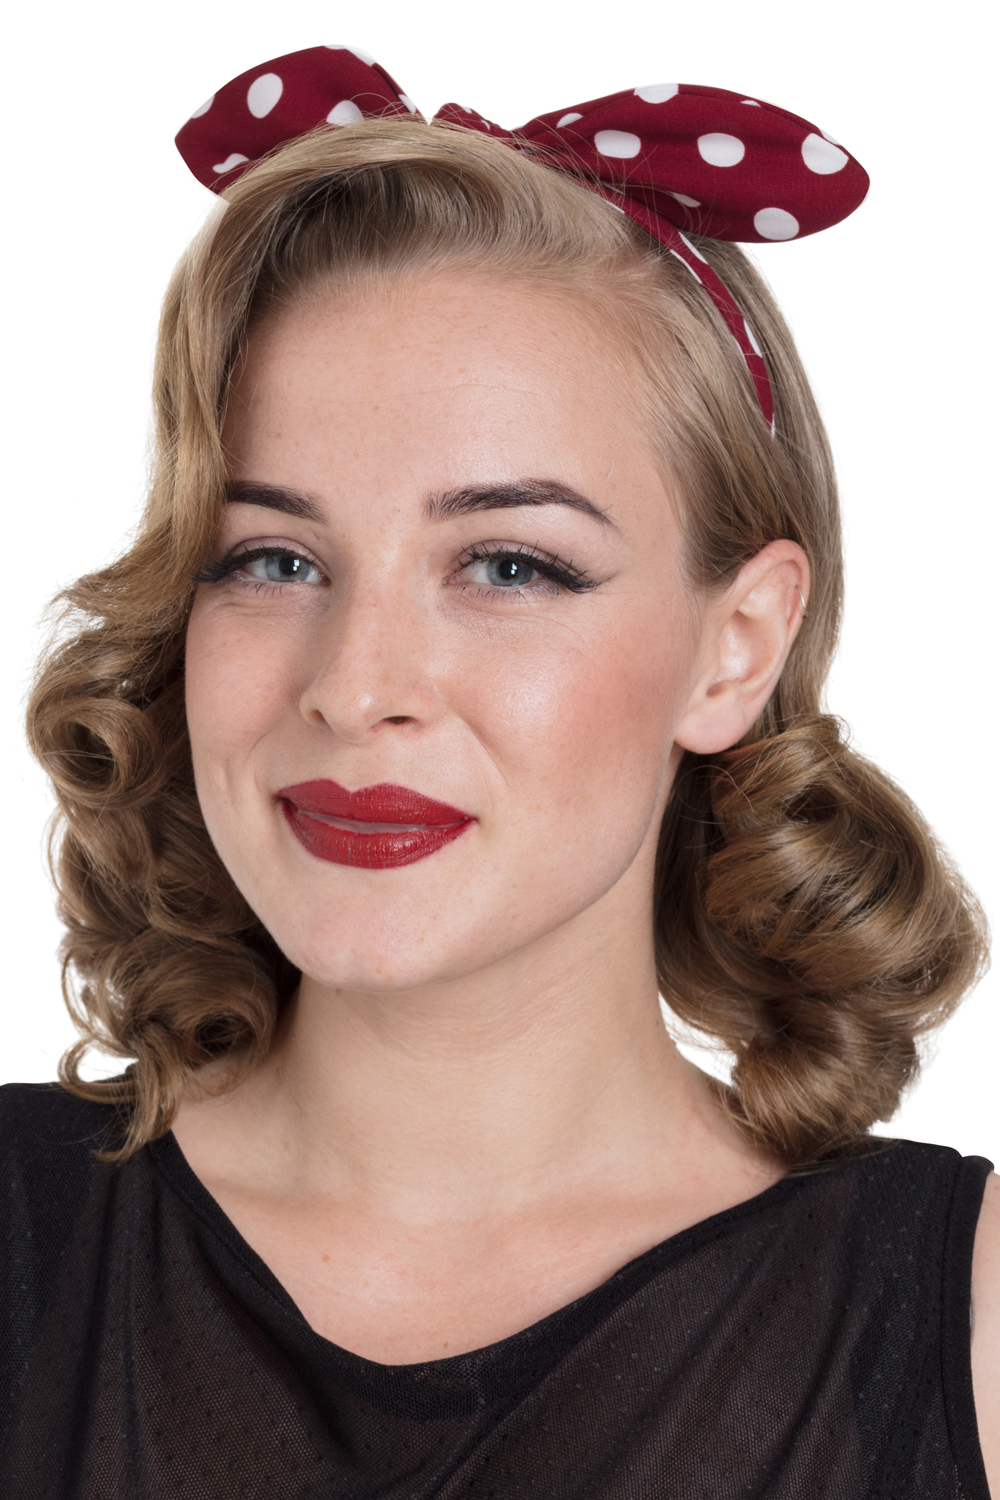 Structured Bow Headband in Red Polka Dot